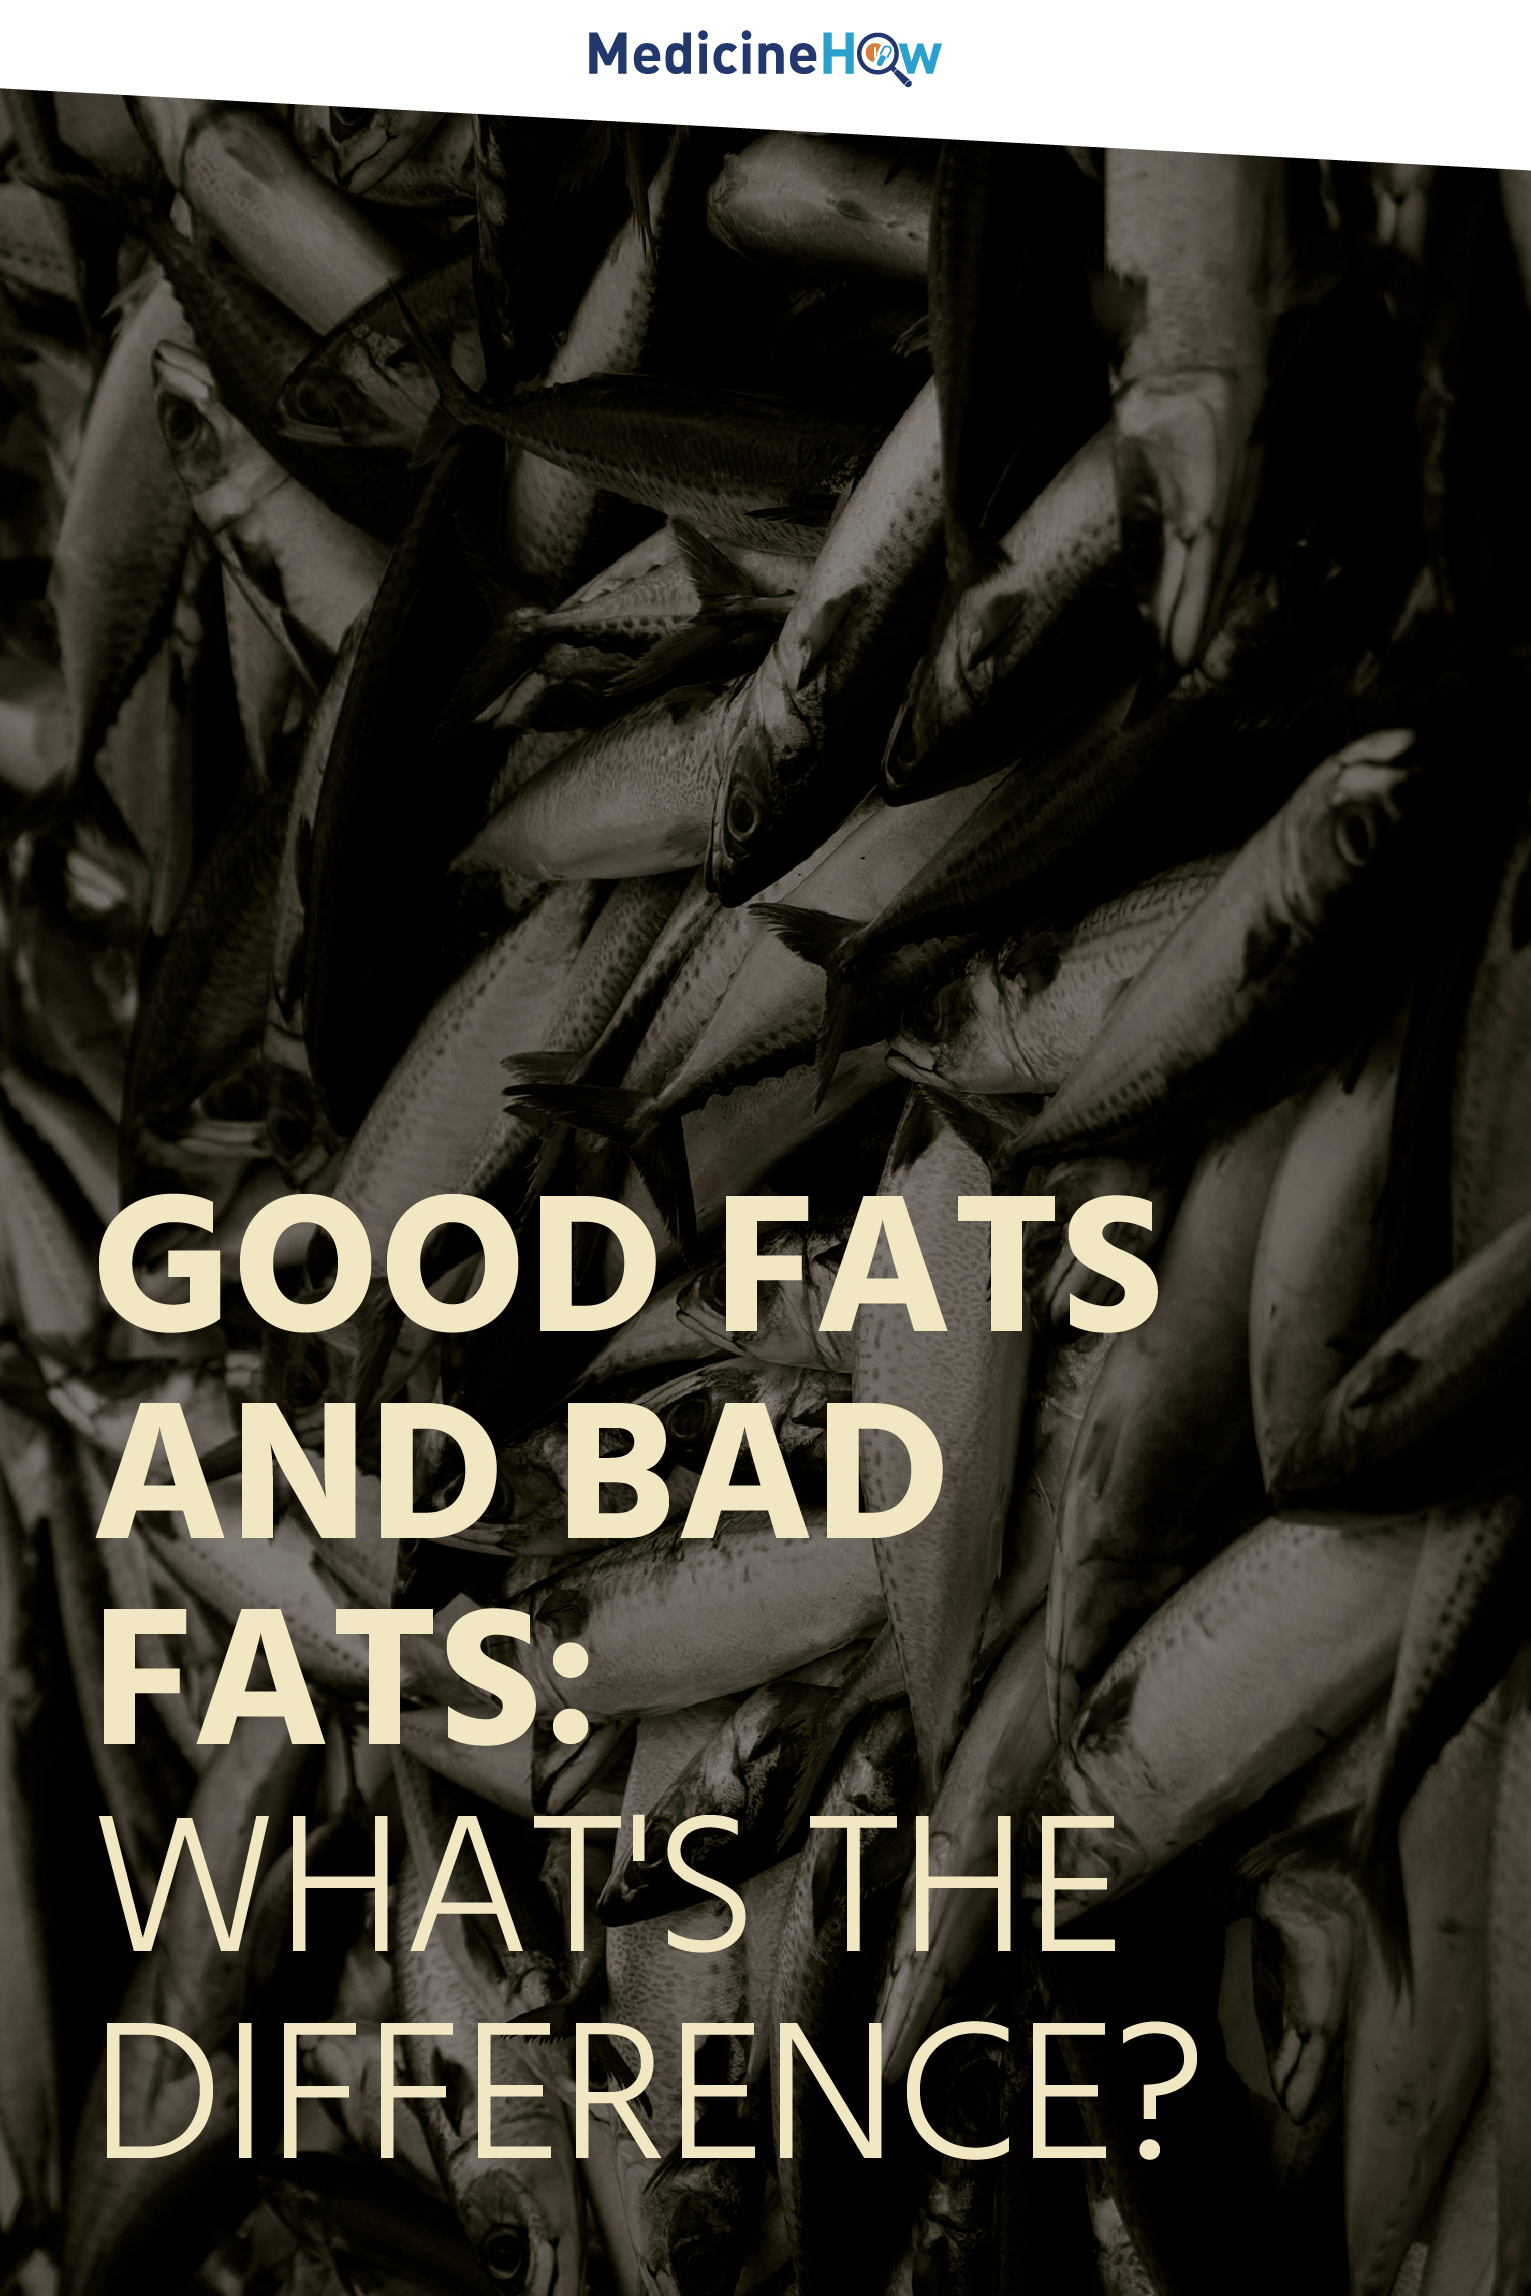 Good fats and bad fats: What's the difference?